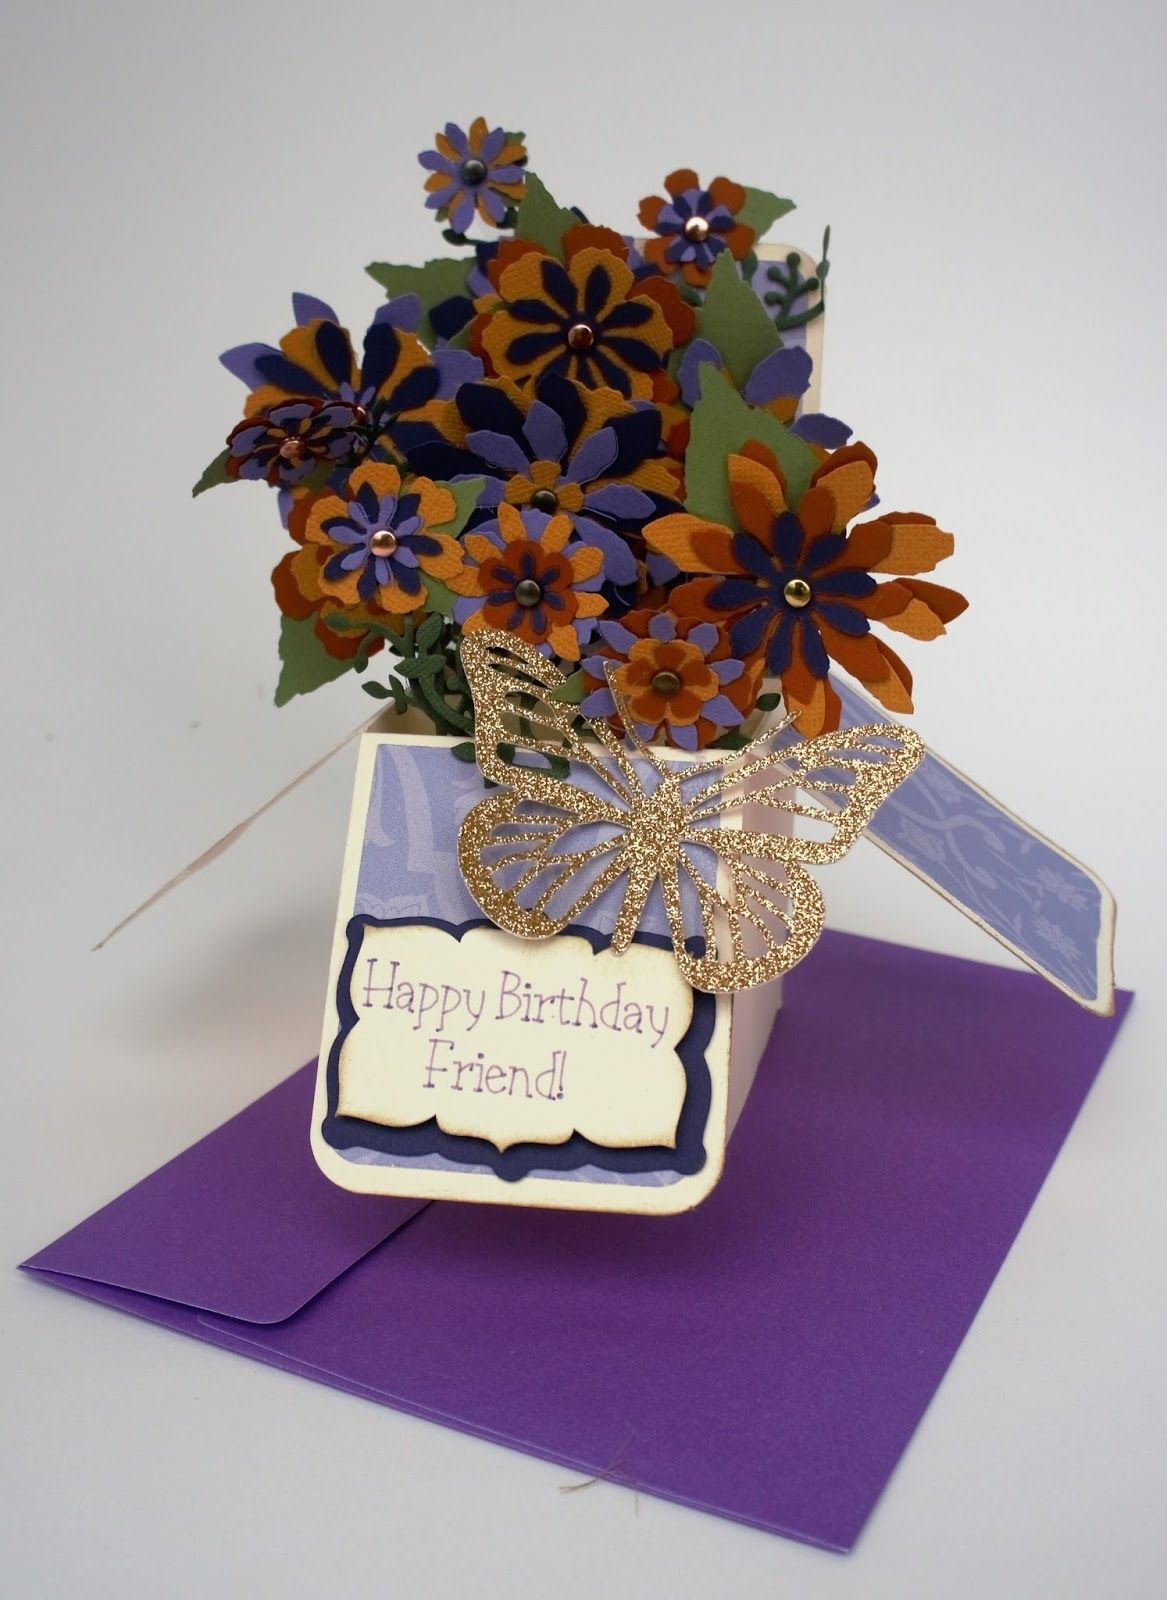 Floral Birthday Box Card Diy projects to try, Birthday